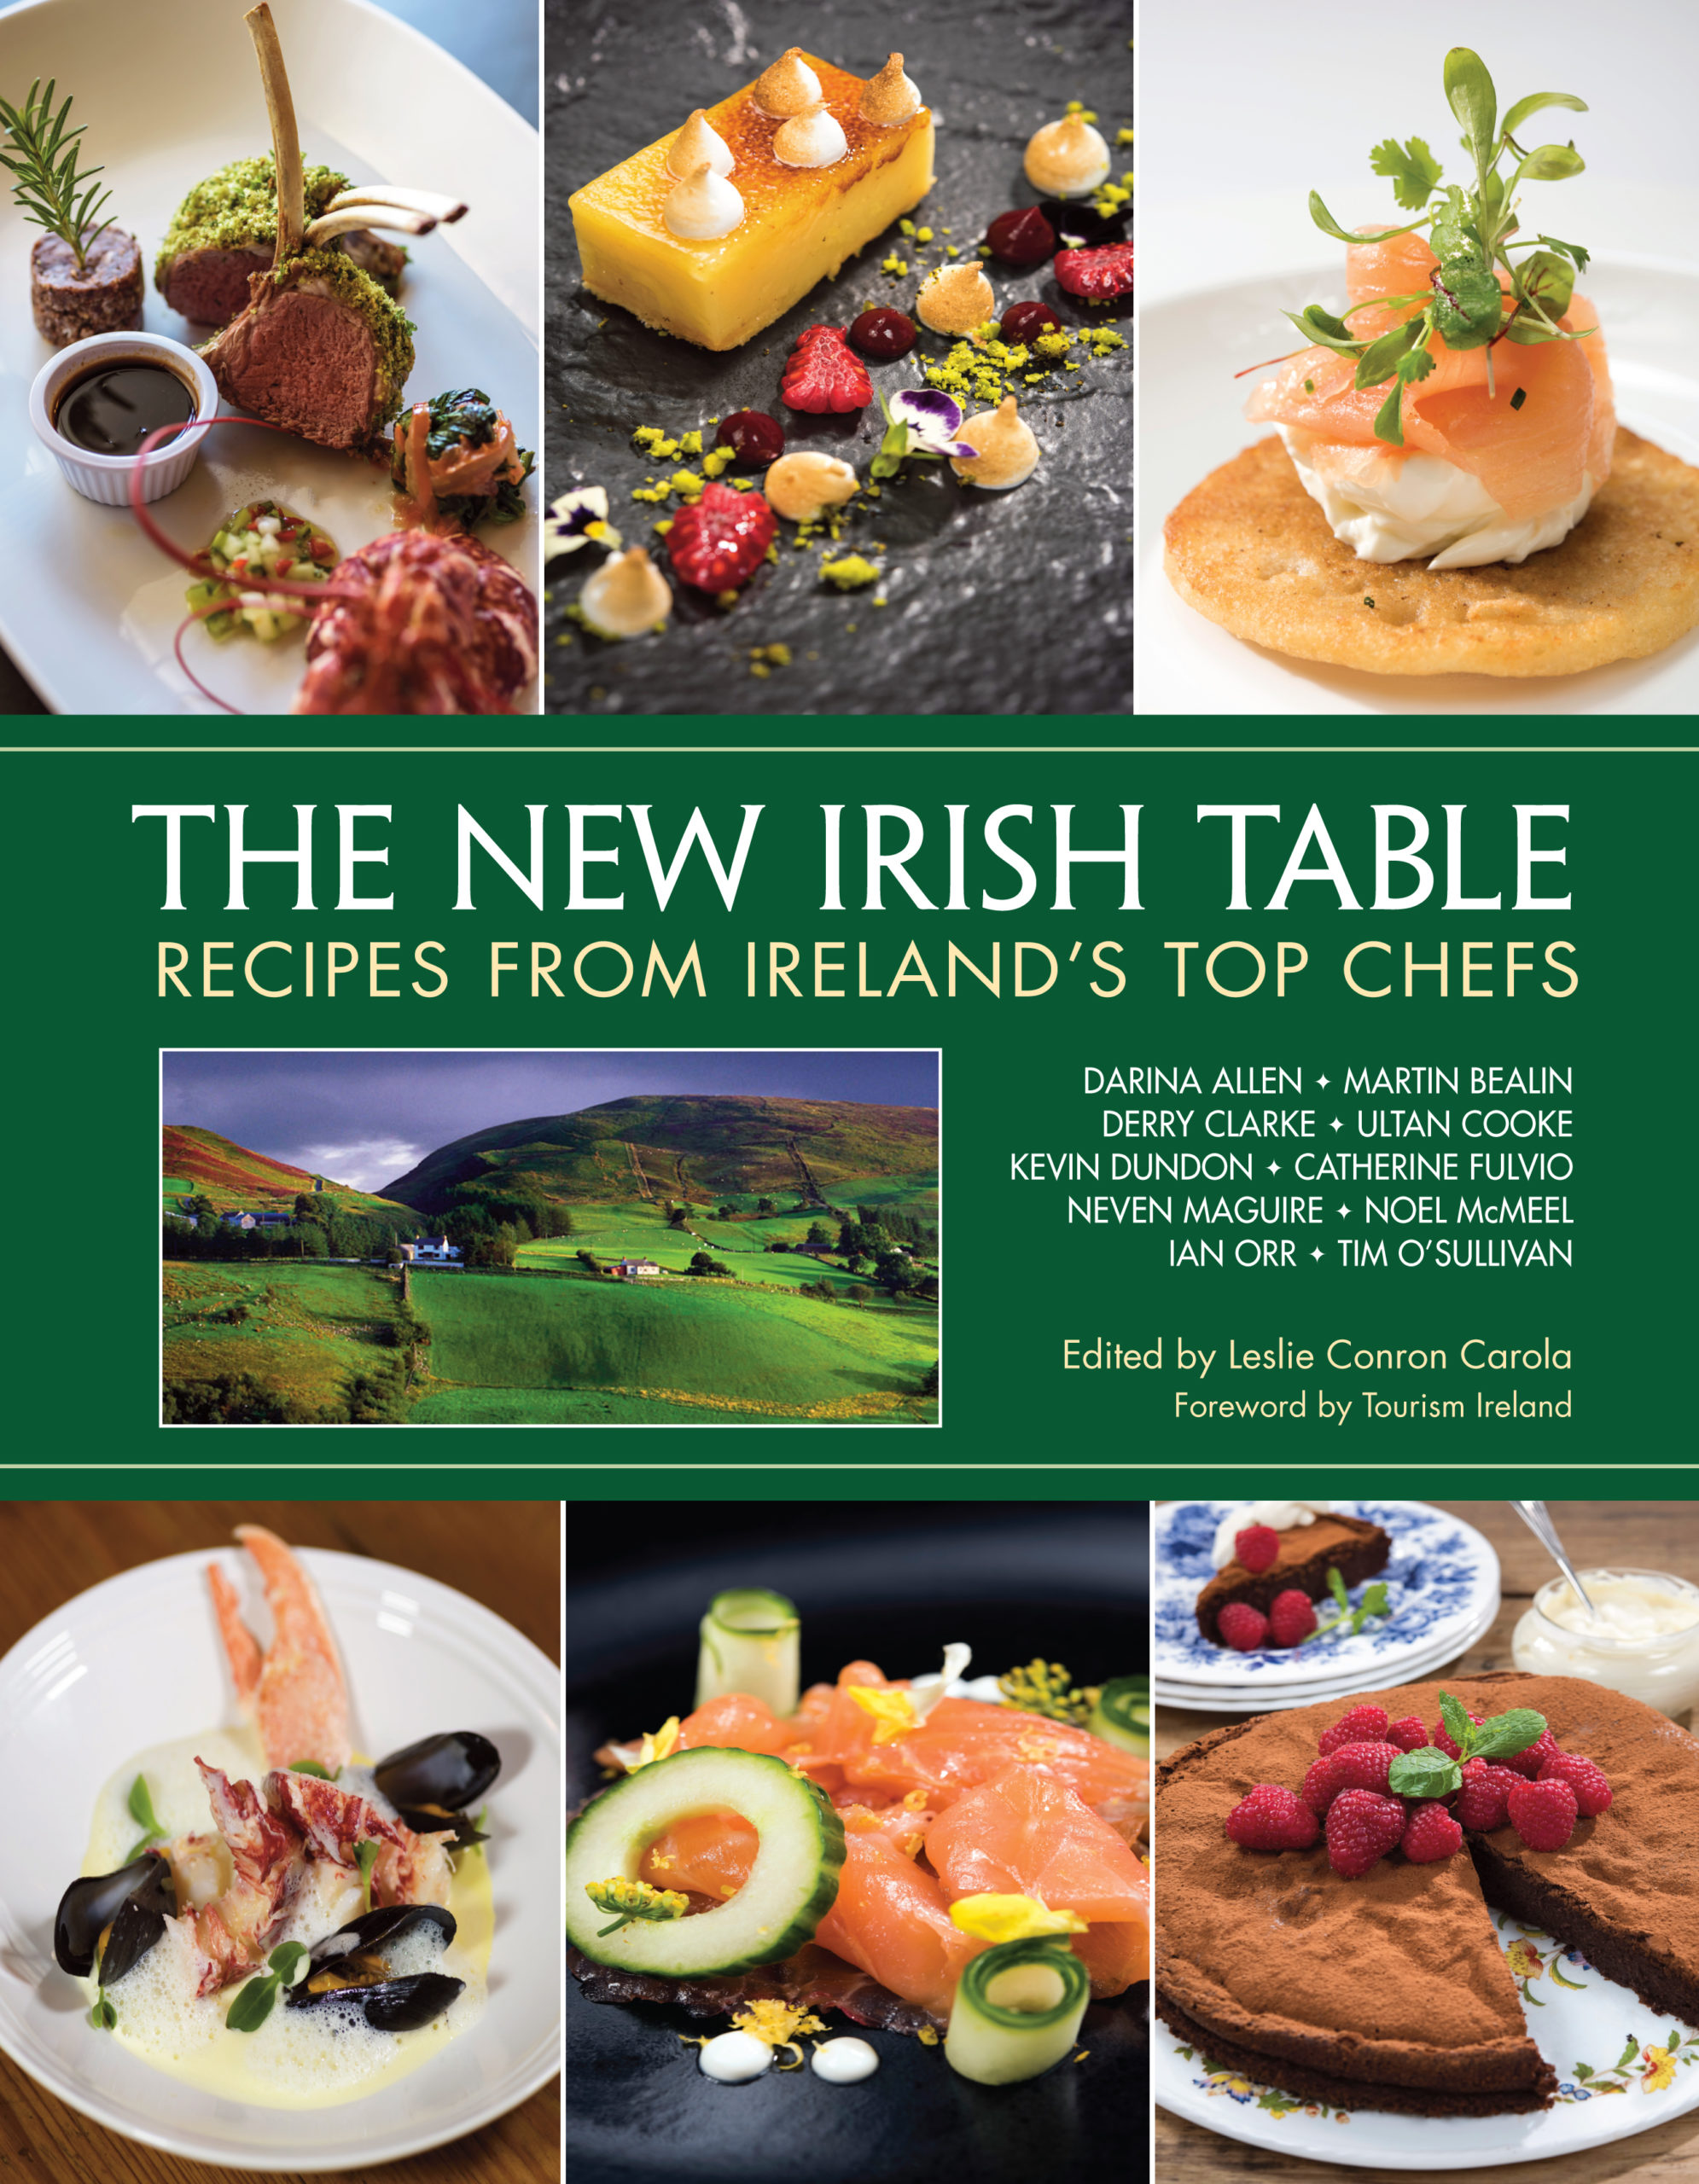 Recipes From Ireland's Top Chefs